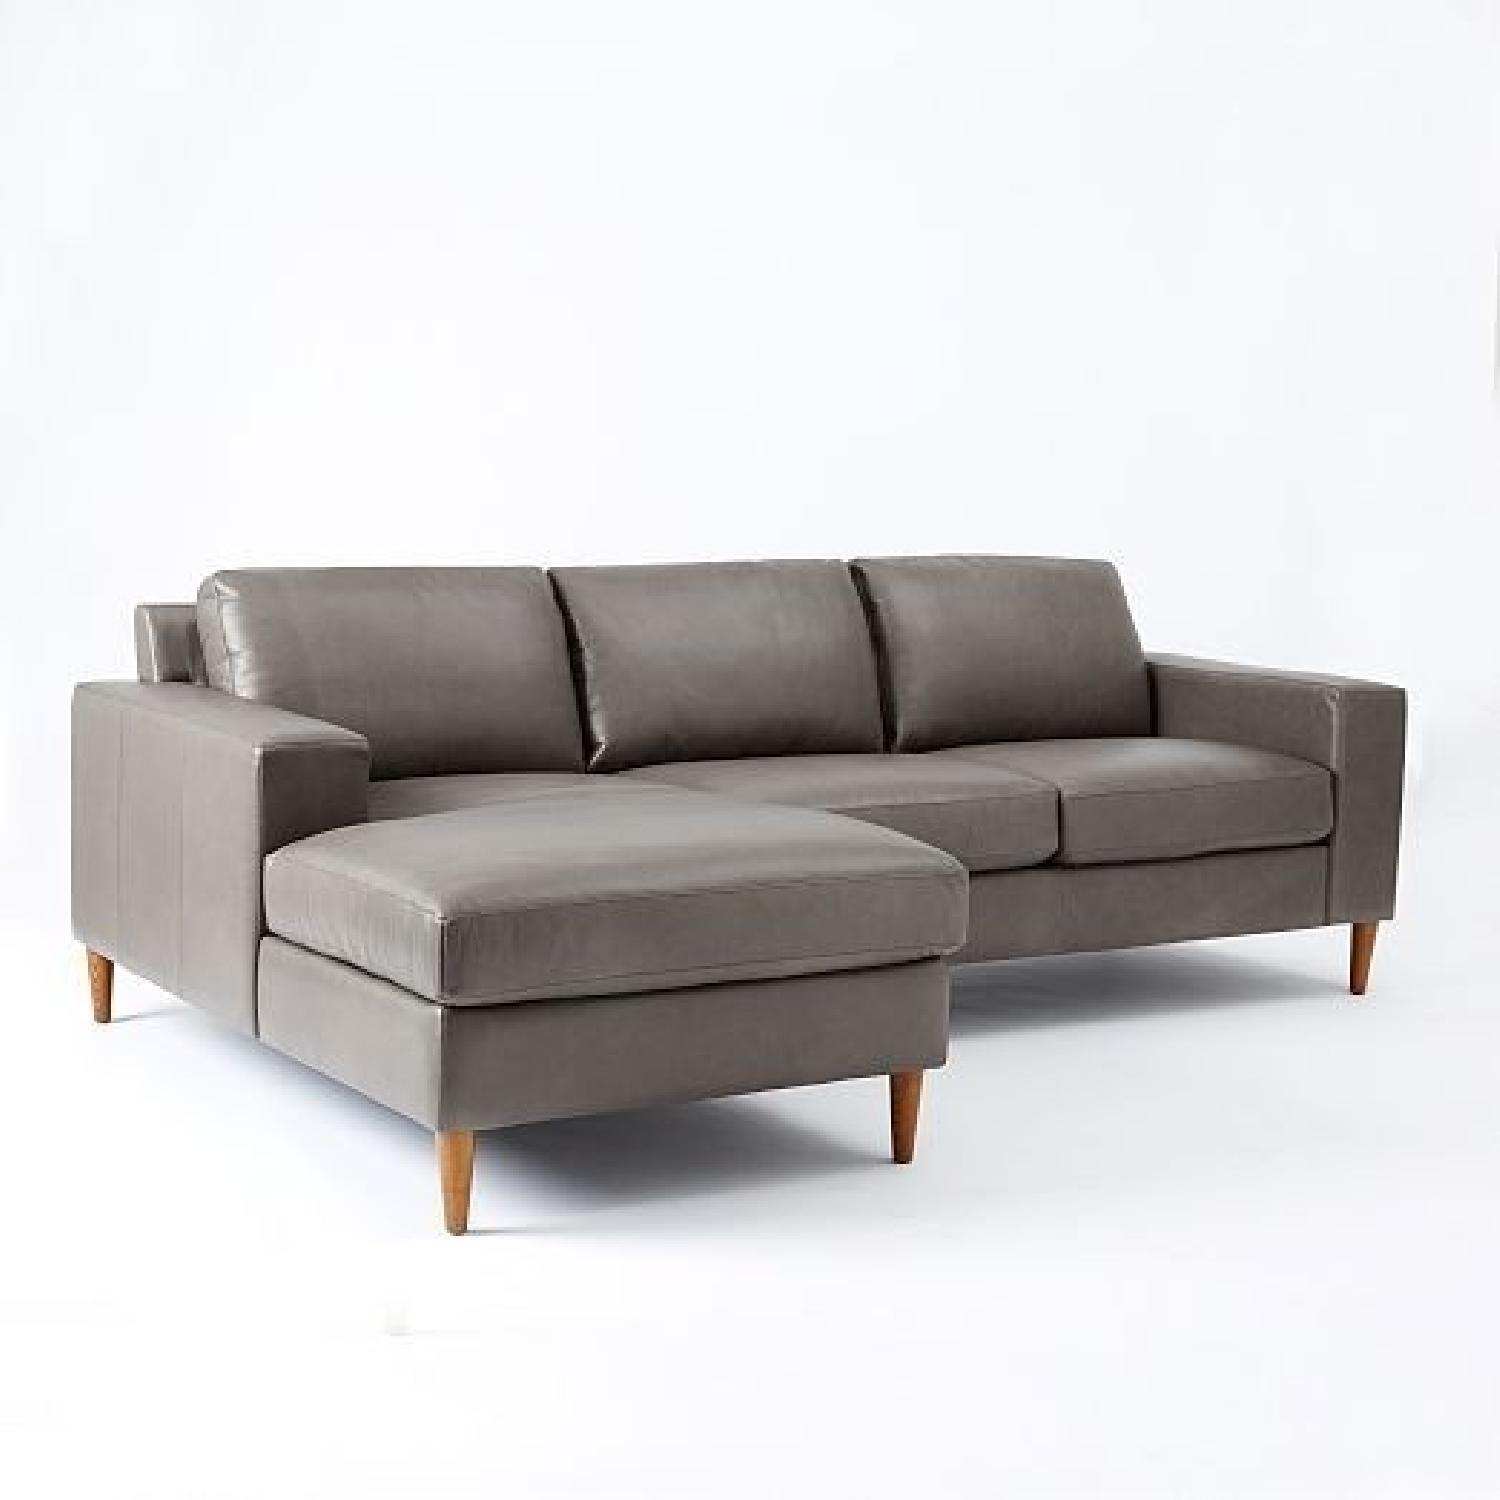 West Elm Leather 2-Piece Chaise Sectional Sofa ... : 2 piece chaise sectional - Sectionals, Sofas & Couches